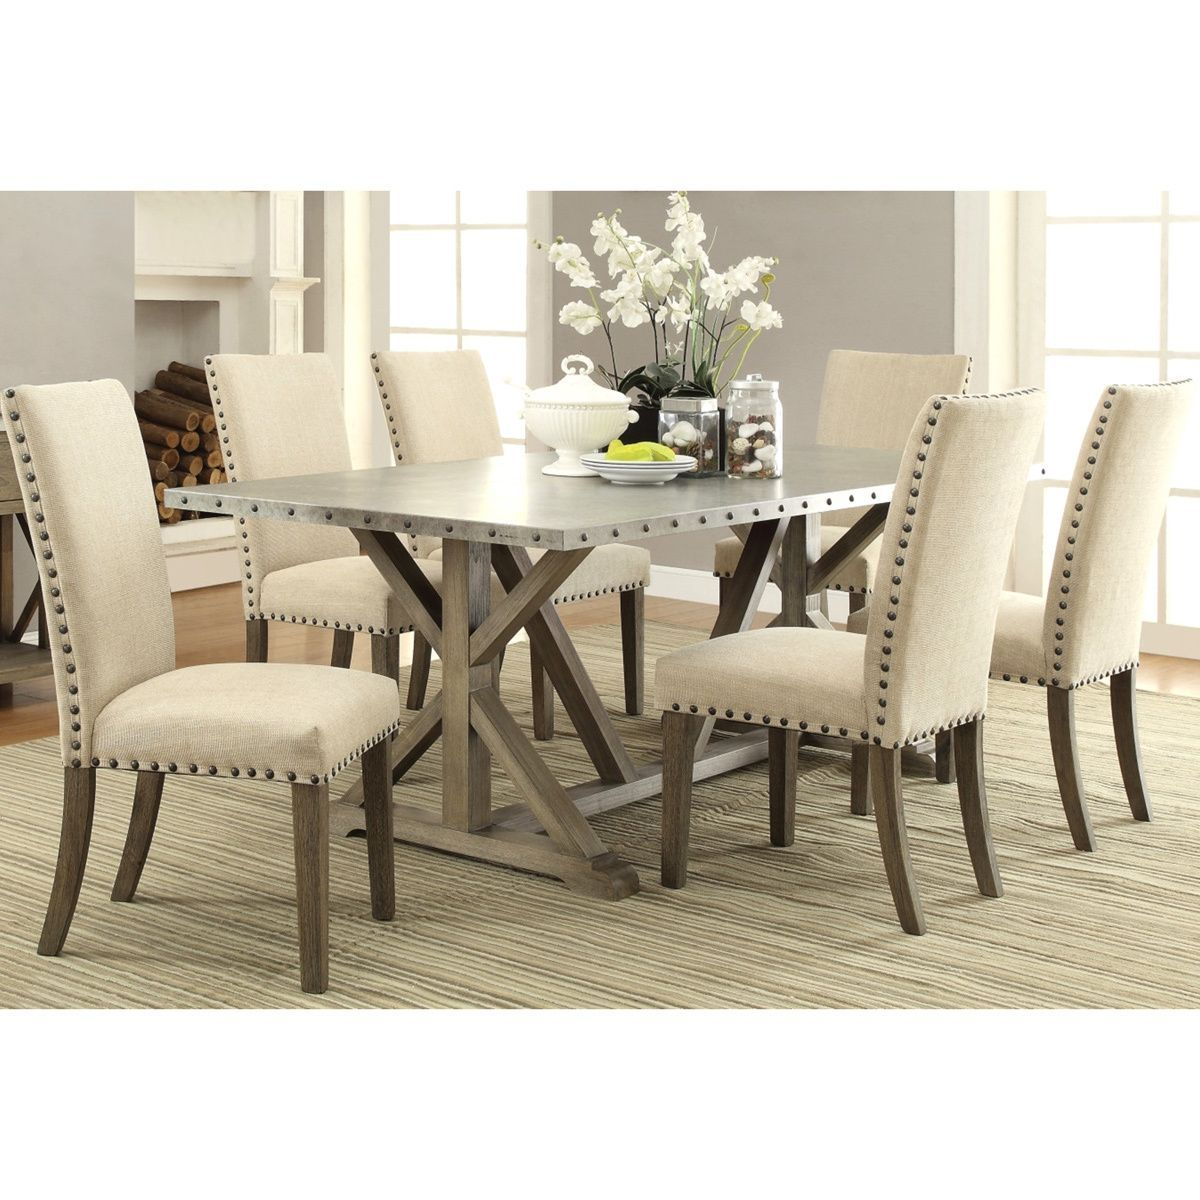 Dining Room Inexpensive Dining Room Table With Bench And: This Stunning Dining Set Offers One Table And Six Or Eight